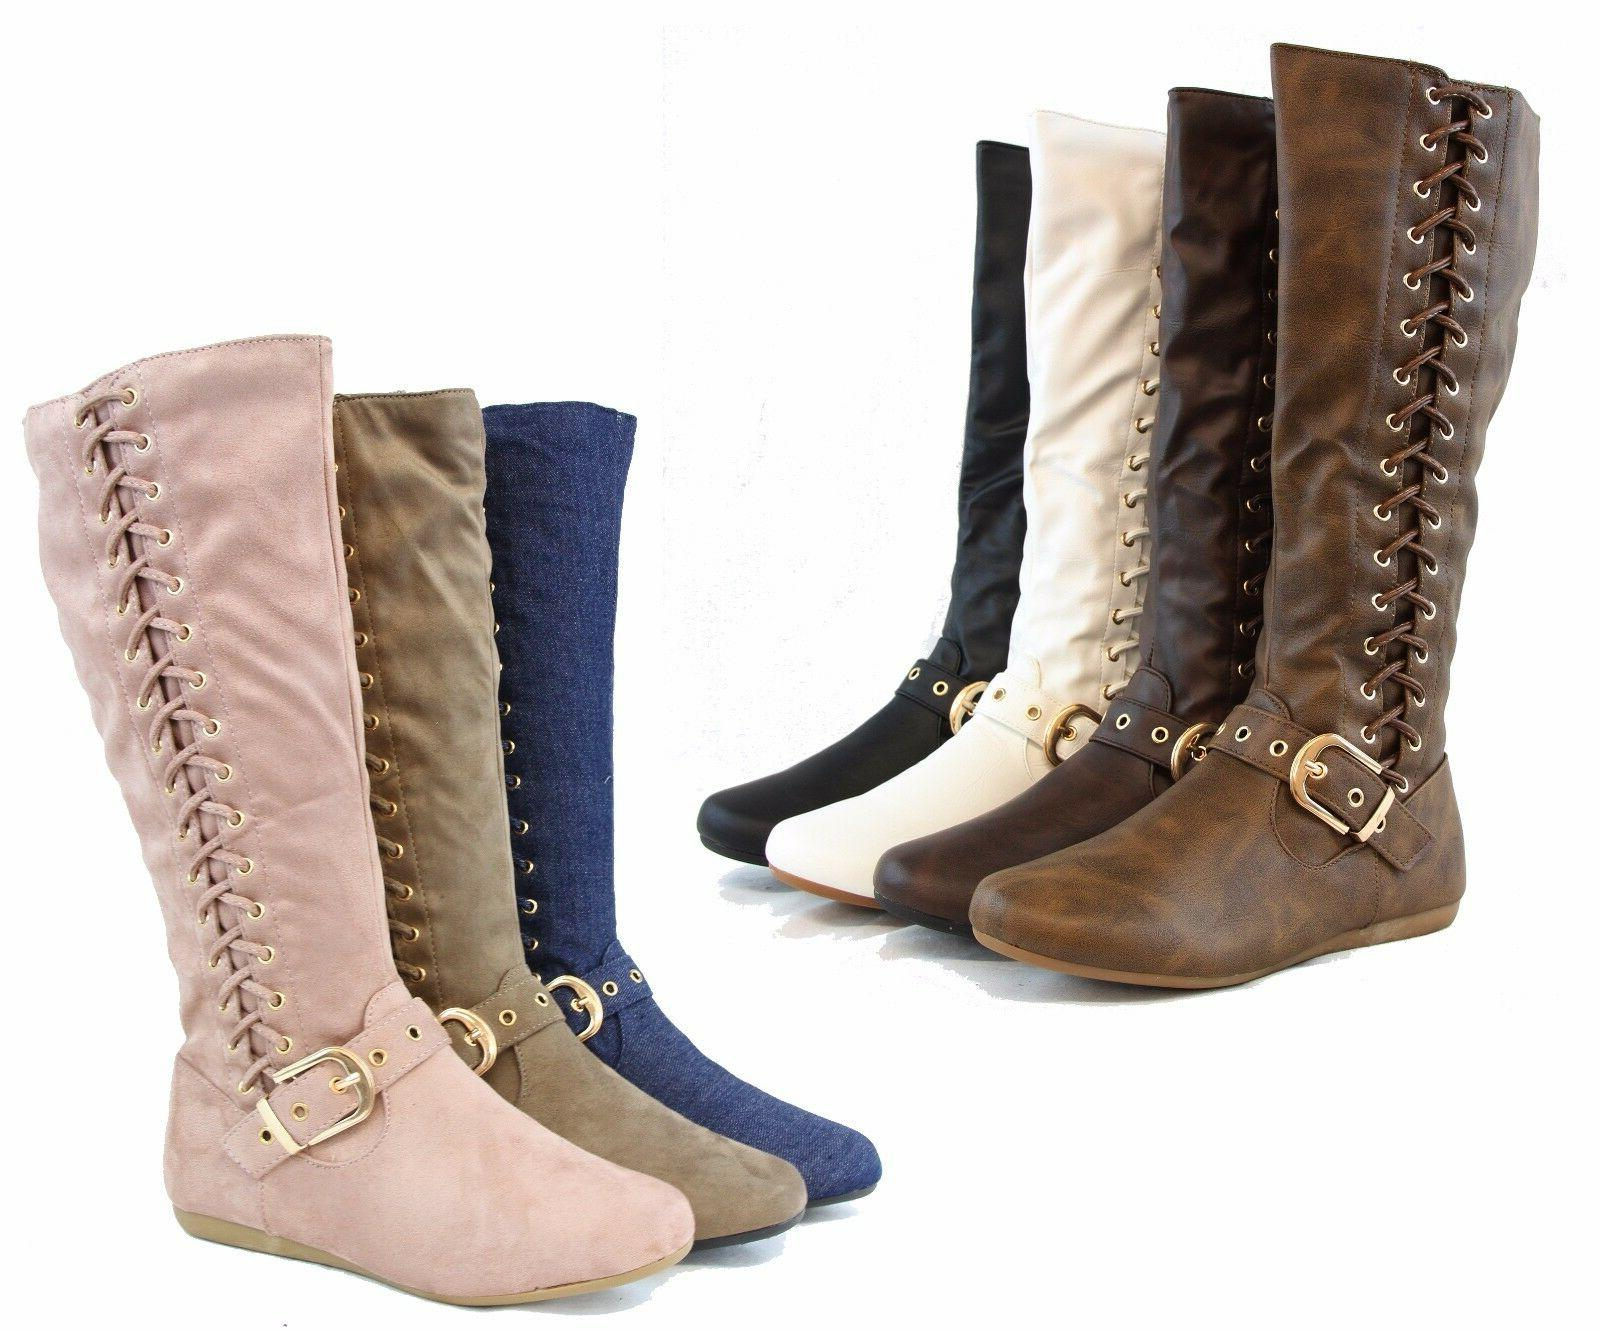 New Design Women Winter Fashion Side-Tie Up Boots Low Knee H